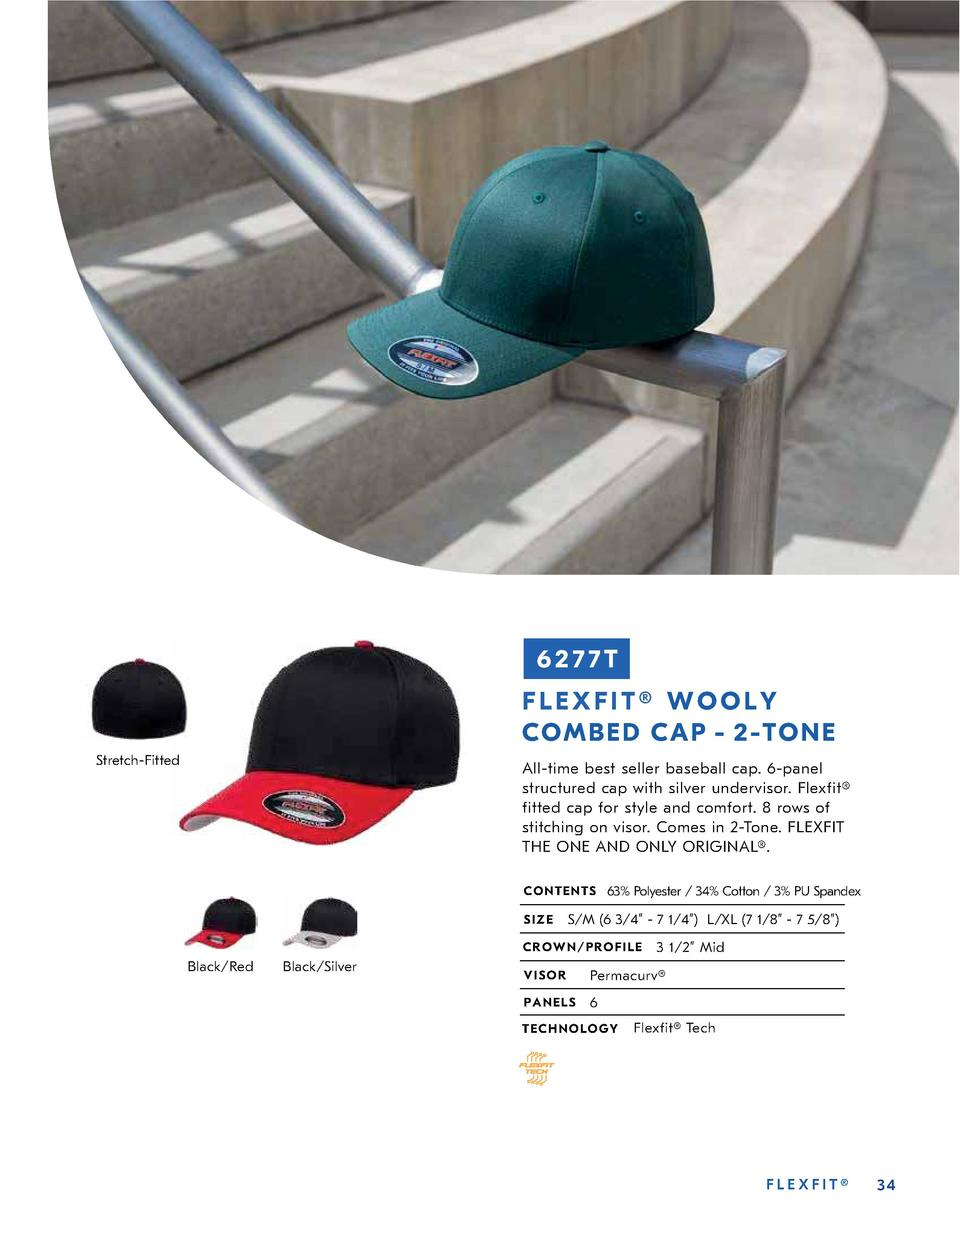 6277T FLEXFIT   WOOLY CO MBE D CAP - 2- TO NE Stretch-Fitted  All-time best seller baseball cap. 6-panel structured cap wi...